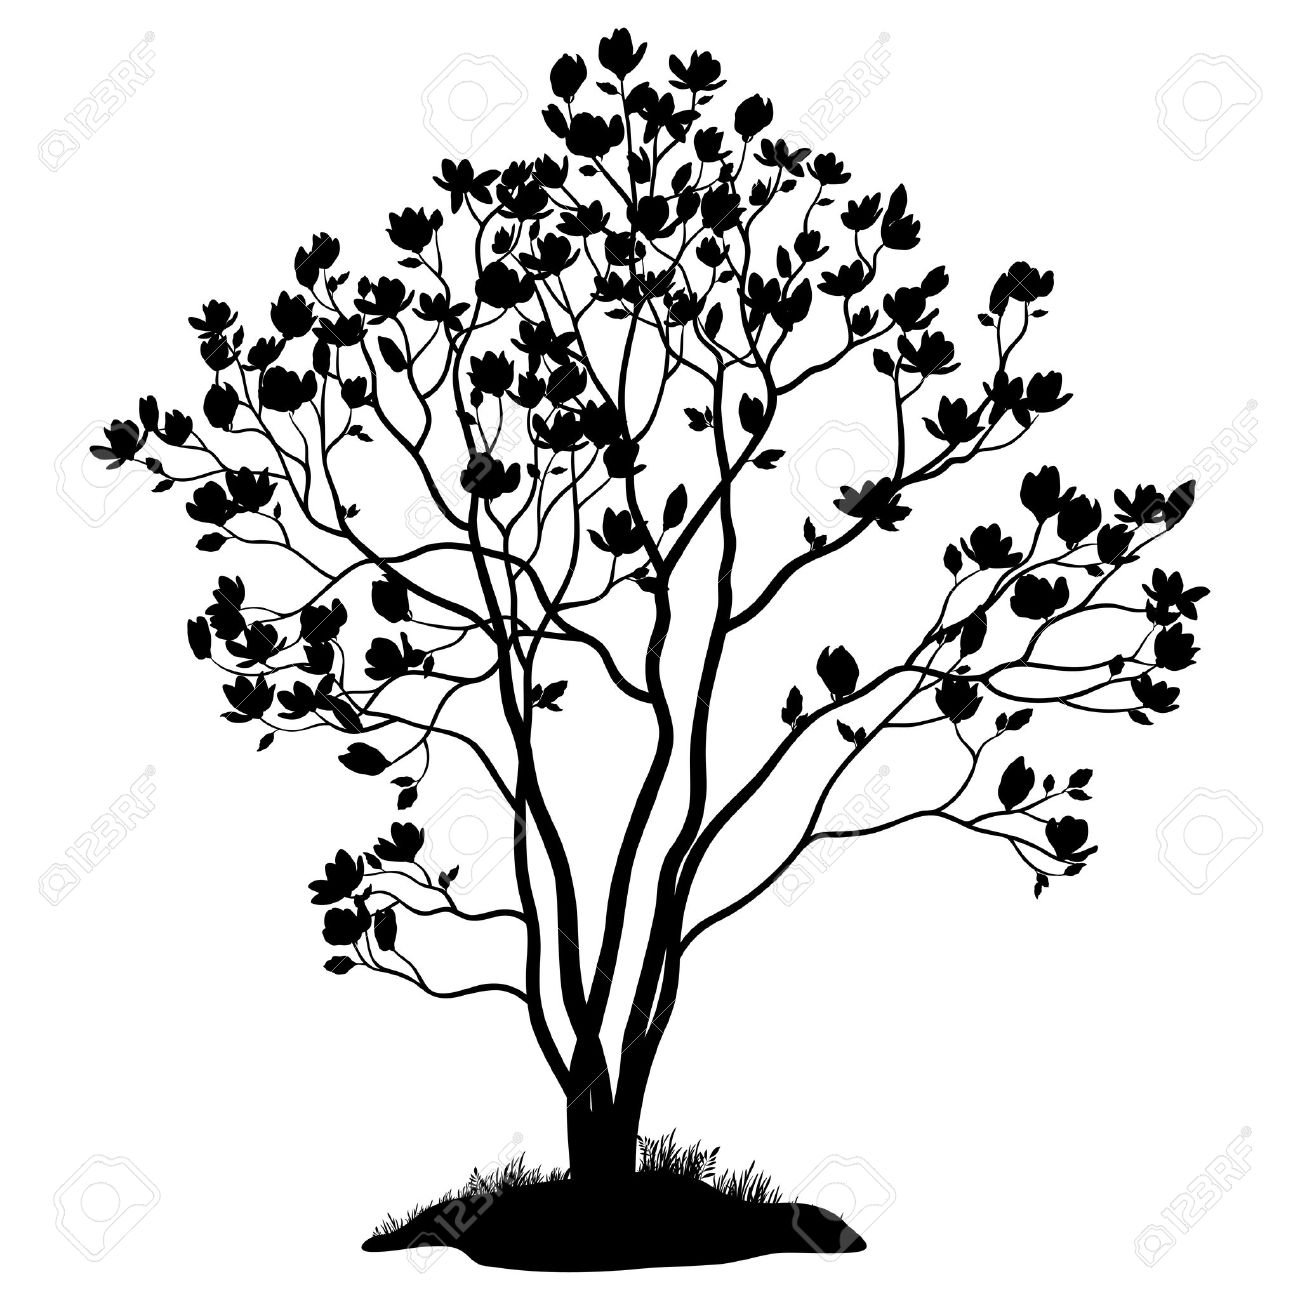 Grass And Flowers Clipart Black White Fall Clip Art